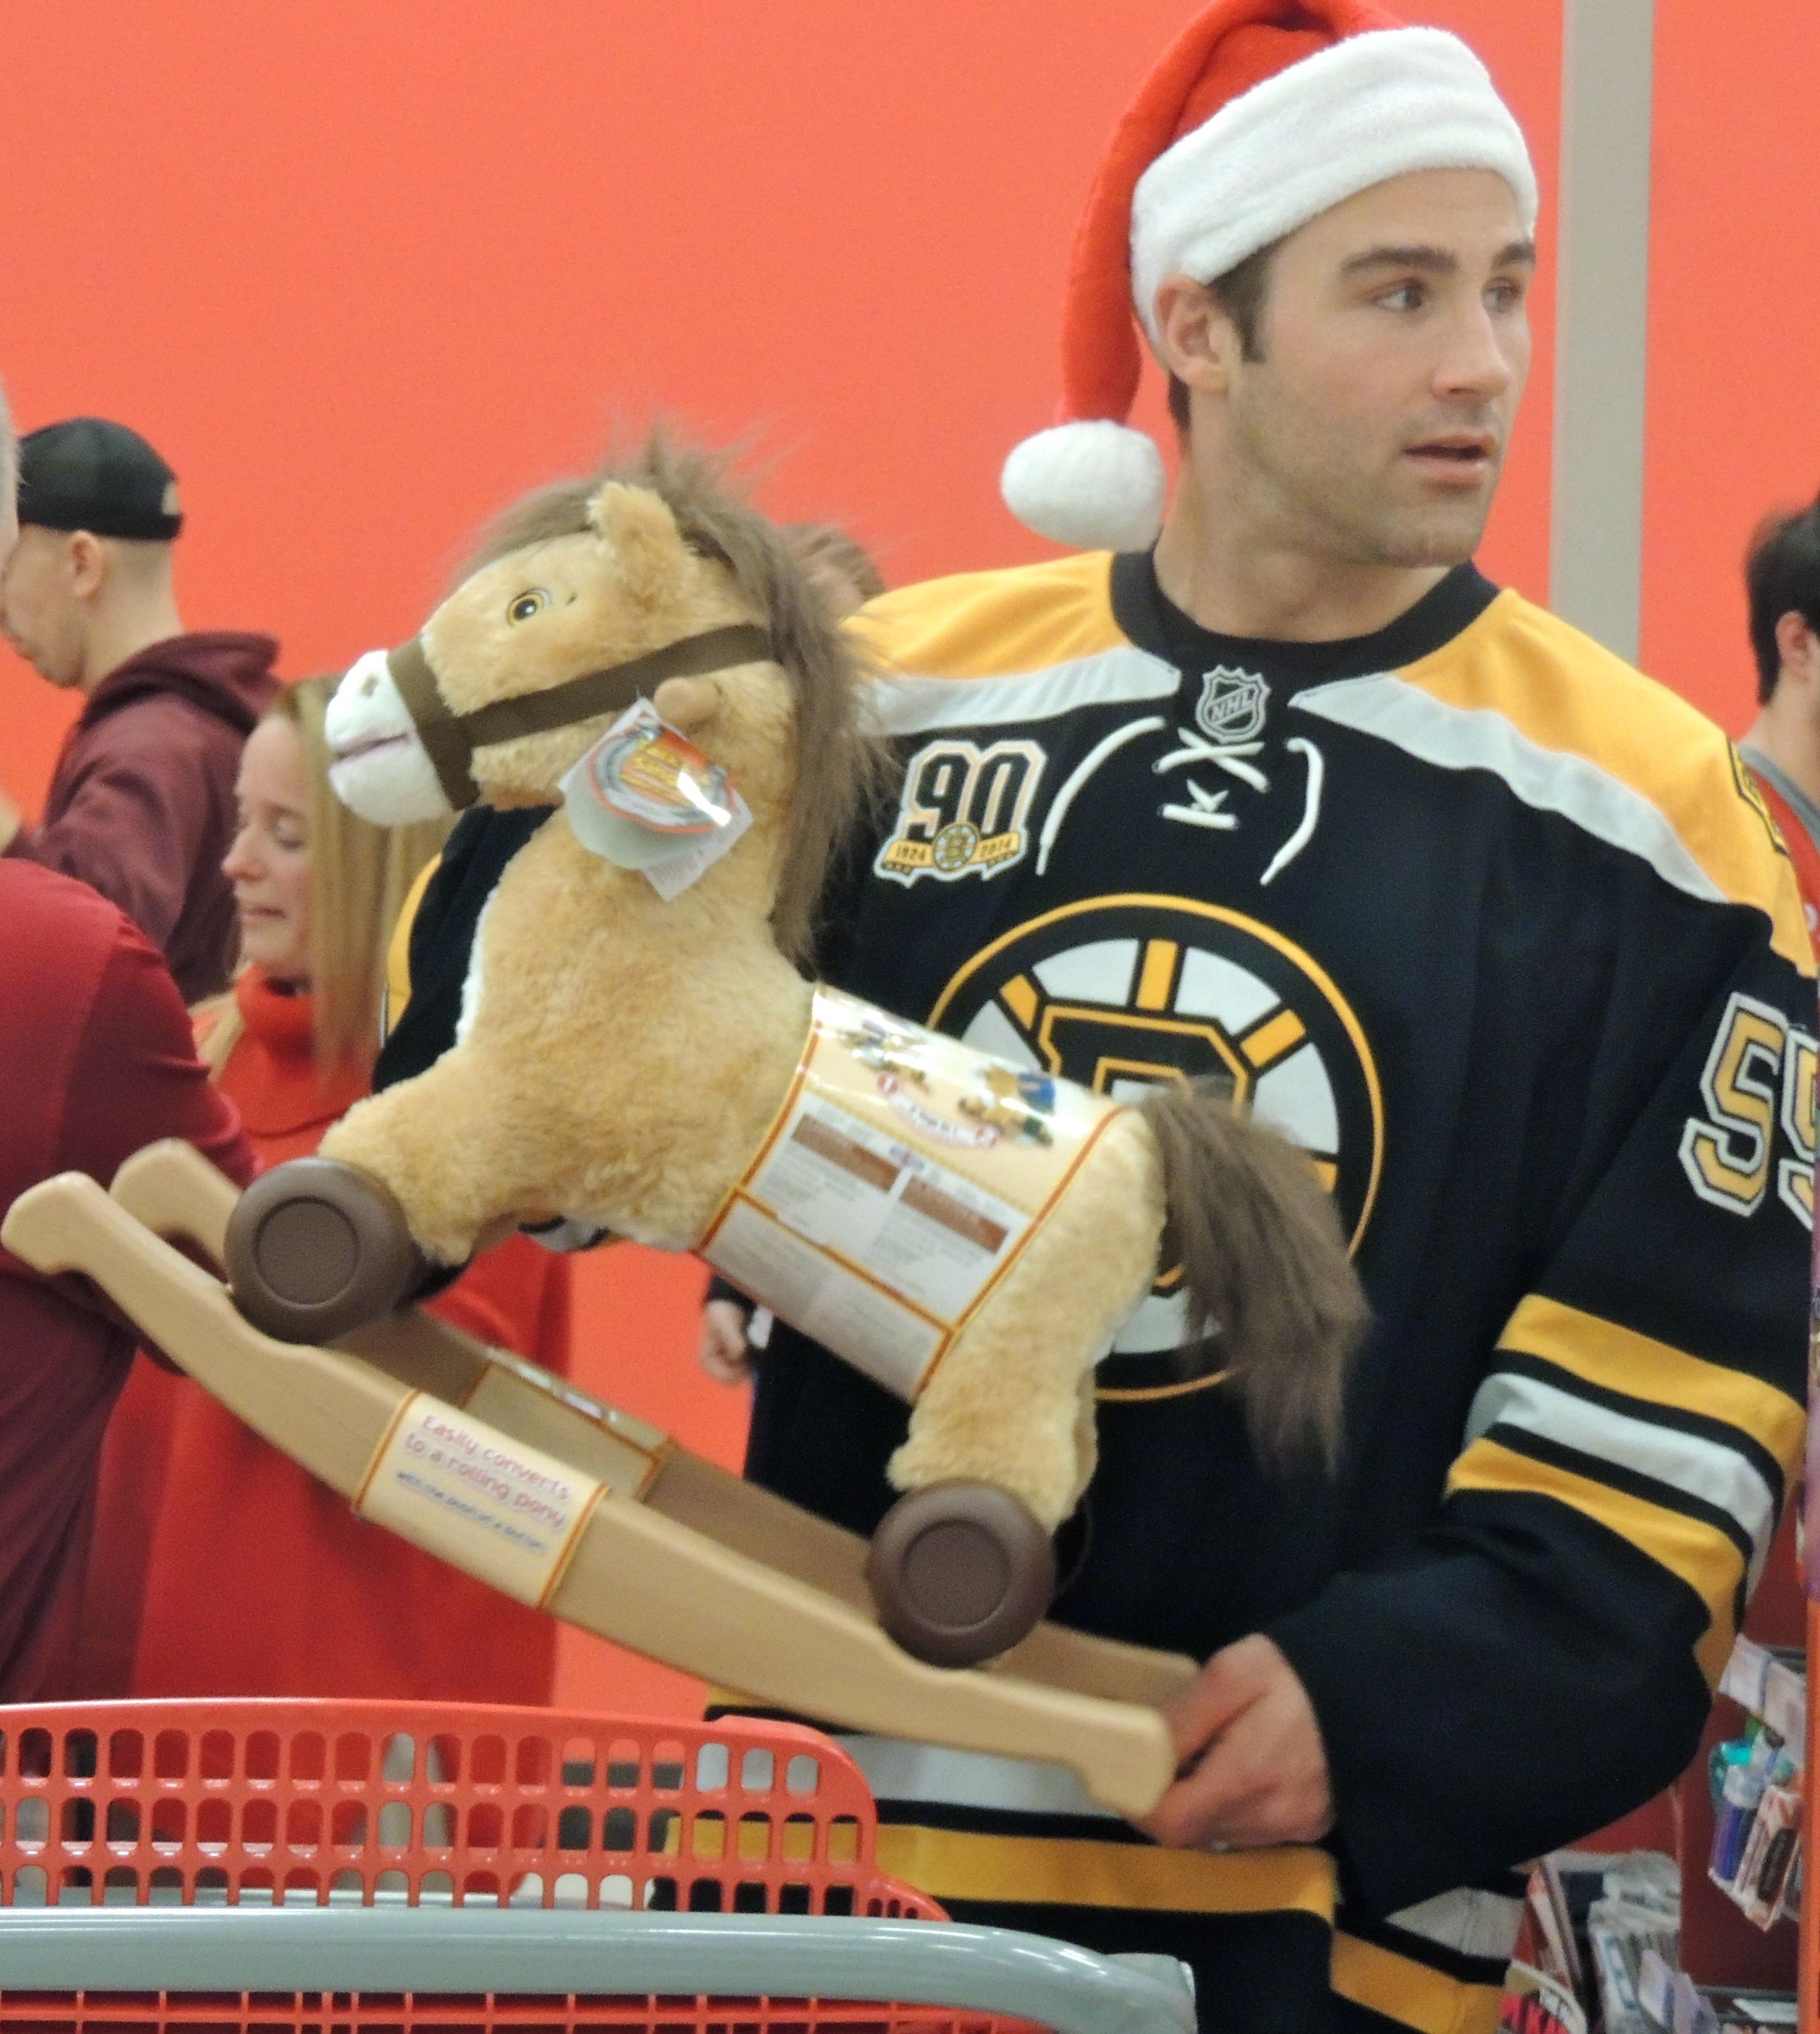 BOSTON BRUINS ANNUAL HOLIDAY TOY SHOPPING